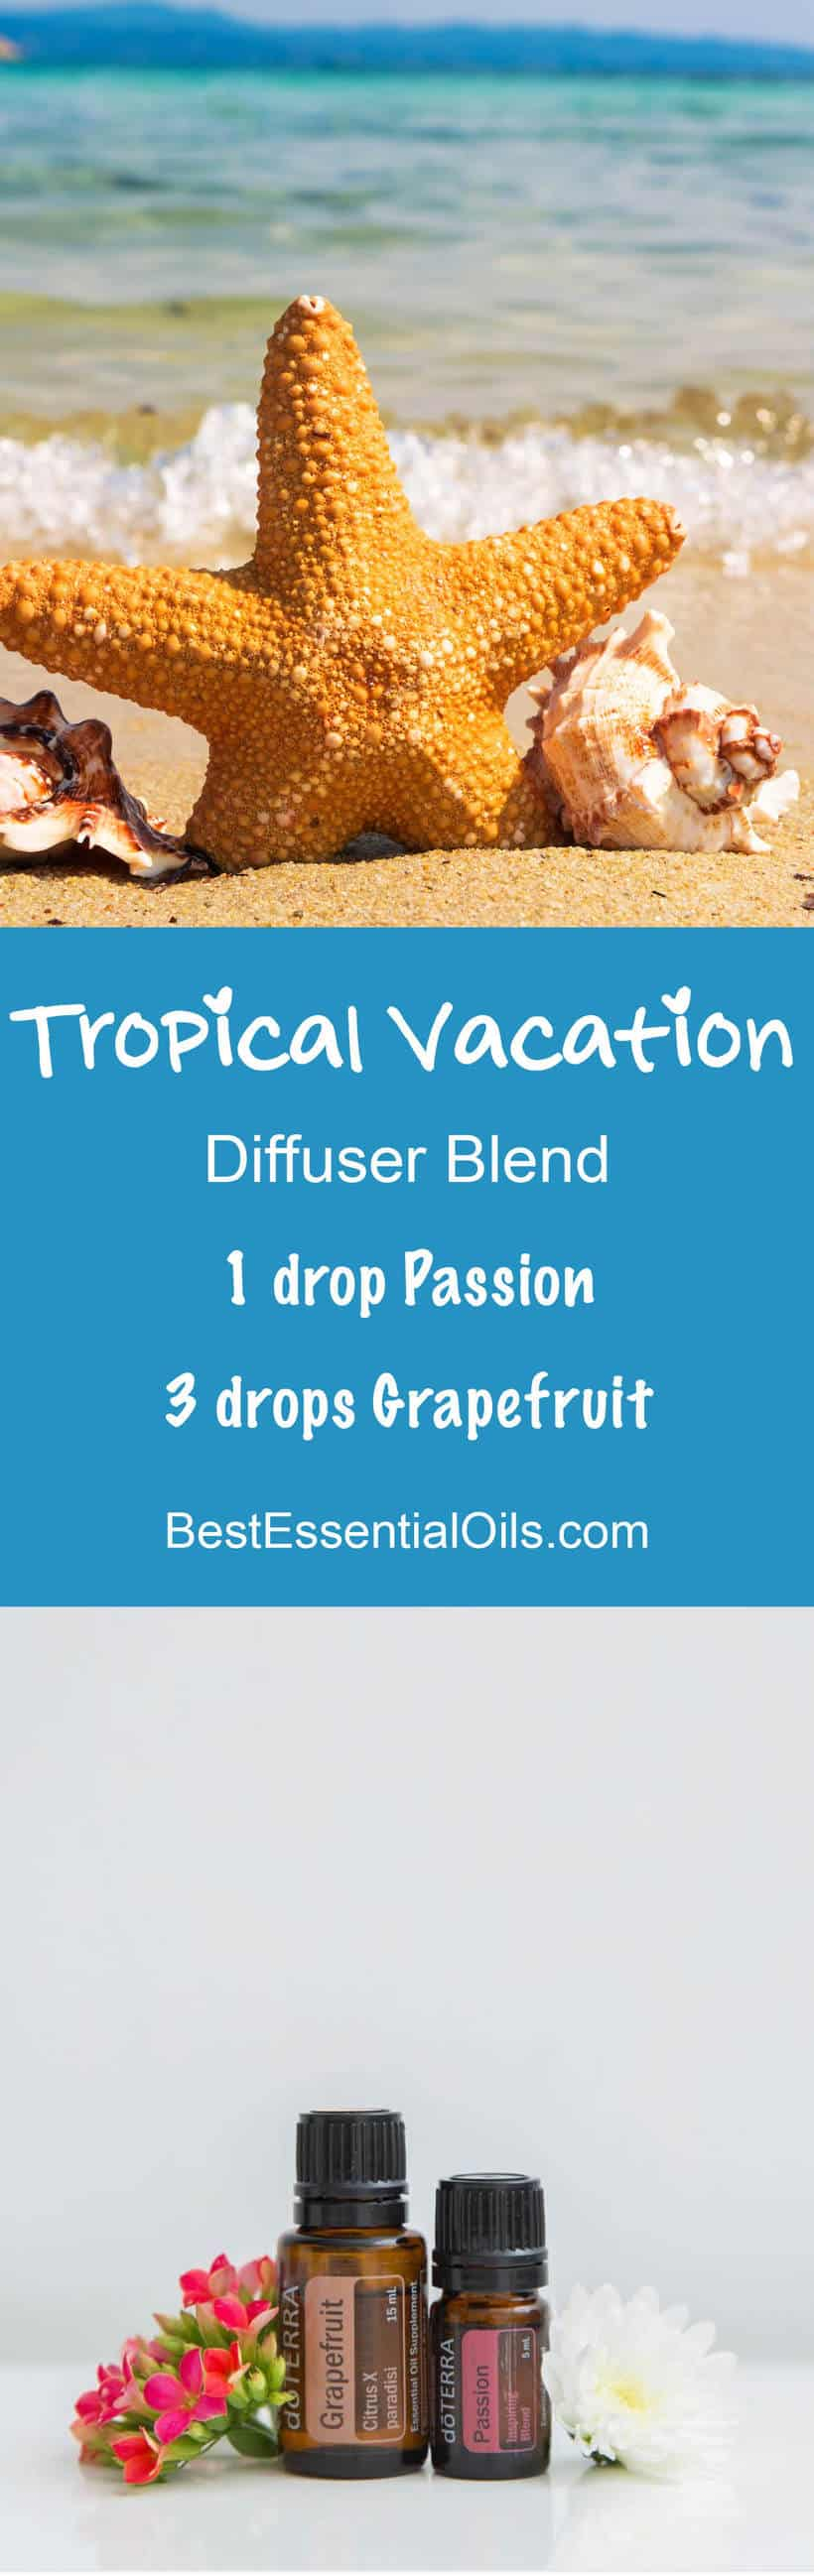 doTERRA Tropical Vacation diffuser blend